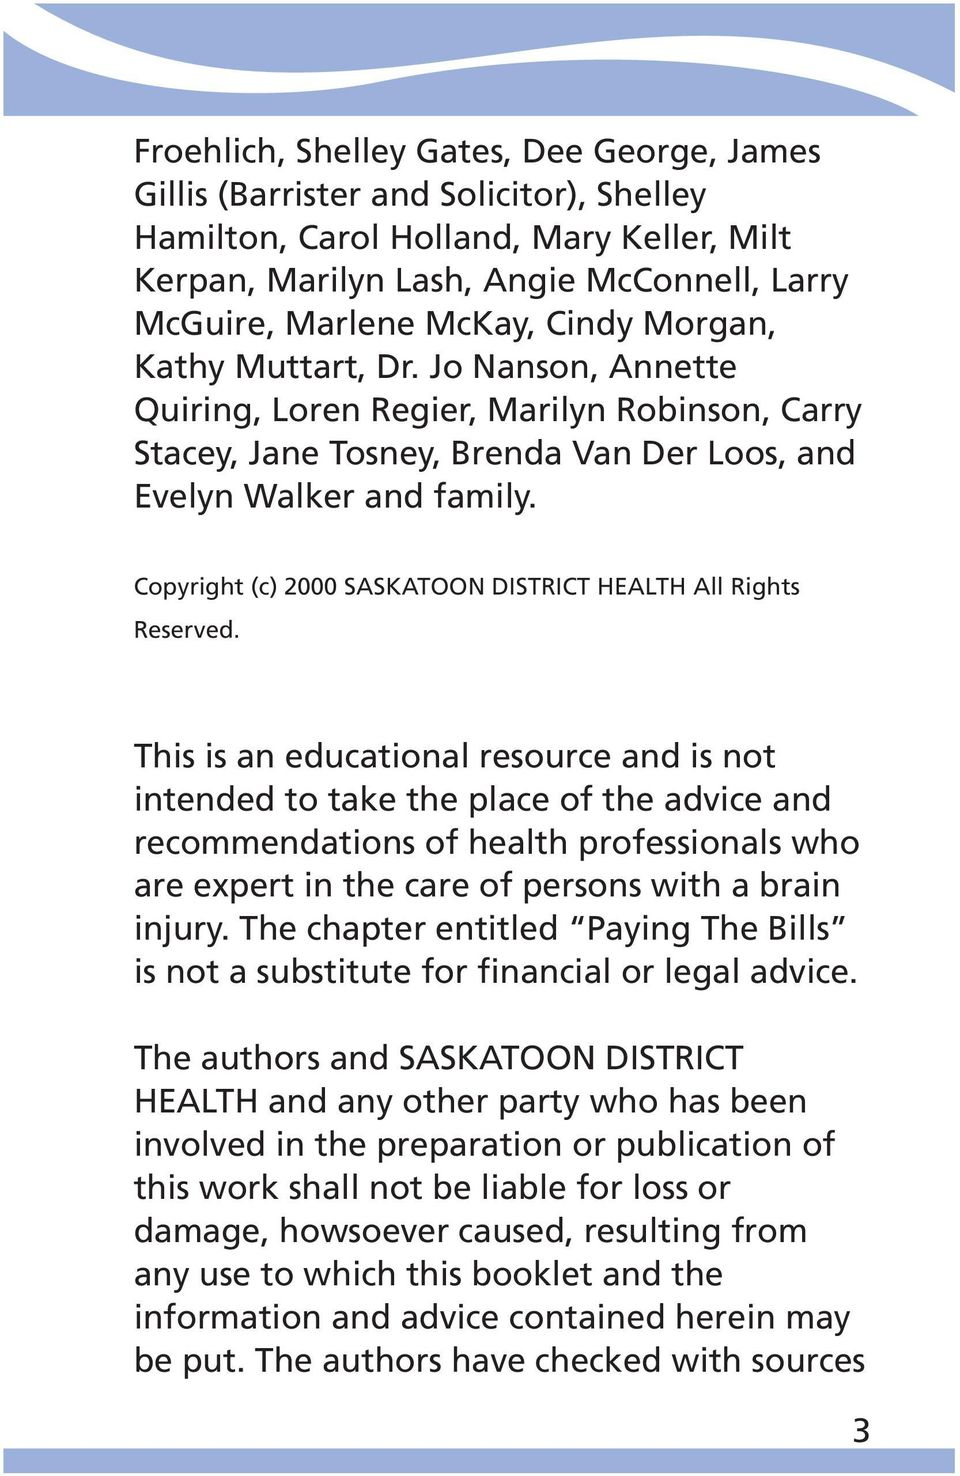 Copyright (c) 2000 SASKATOON DISTRICT HEALTH All Rights Reserved.